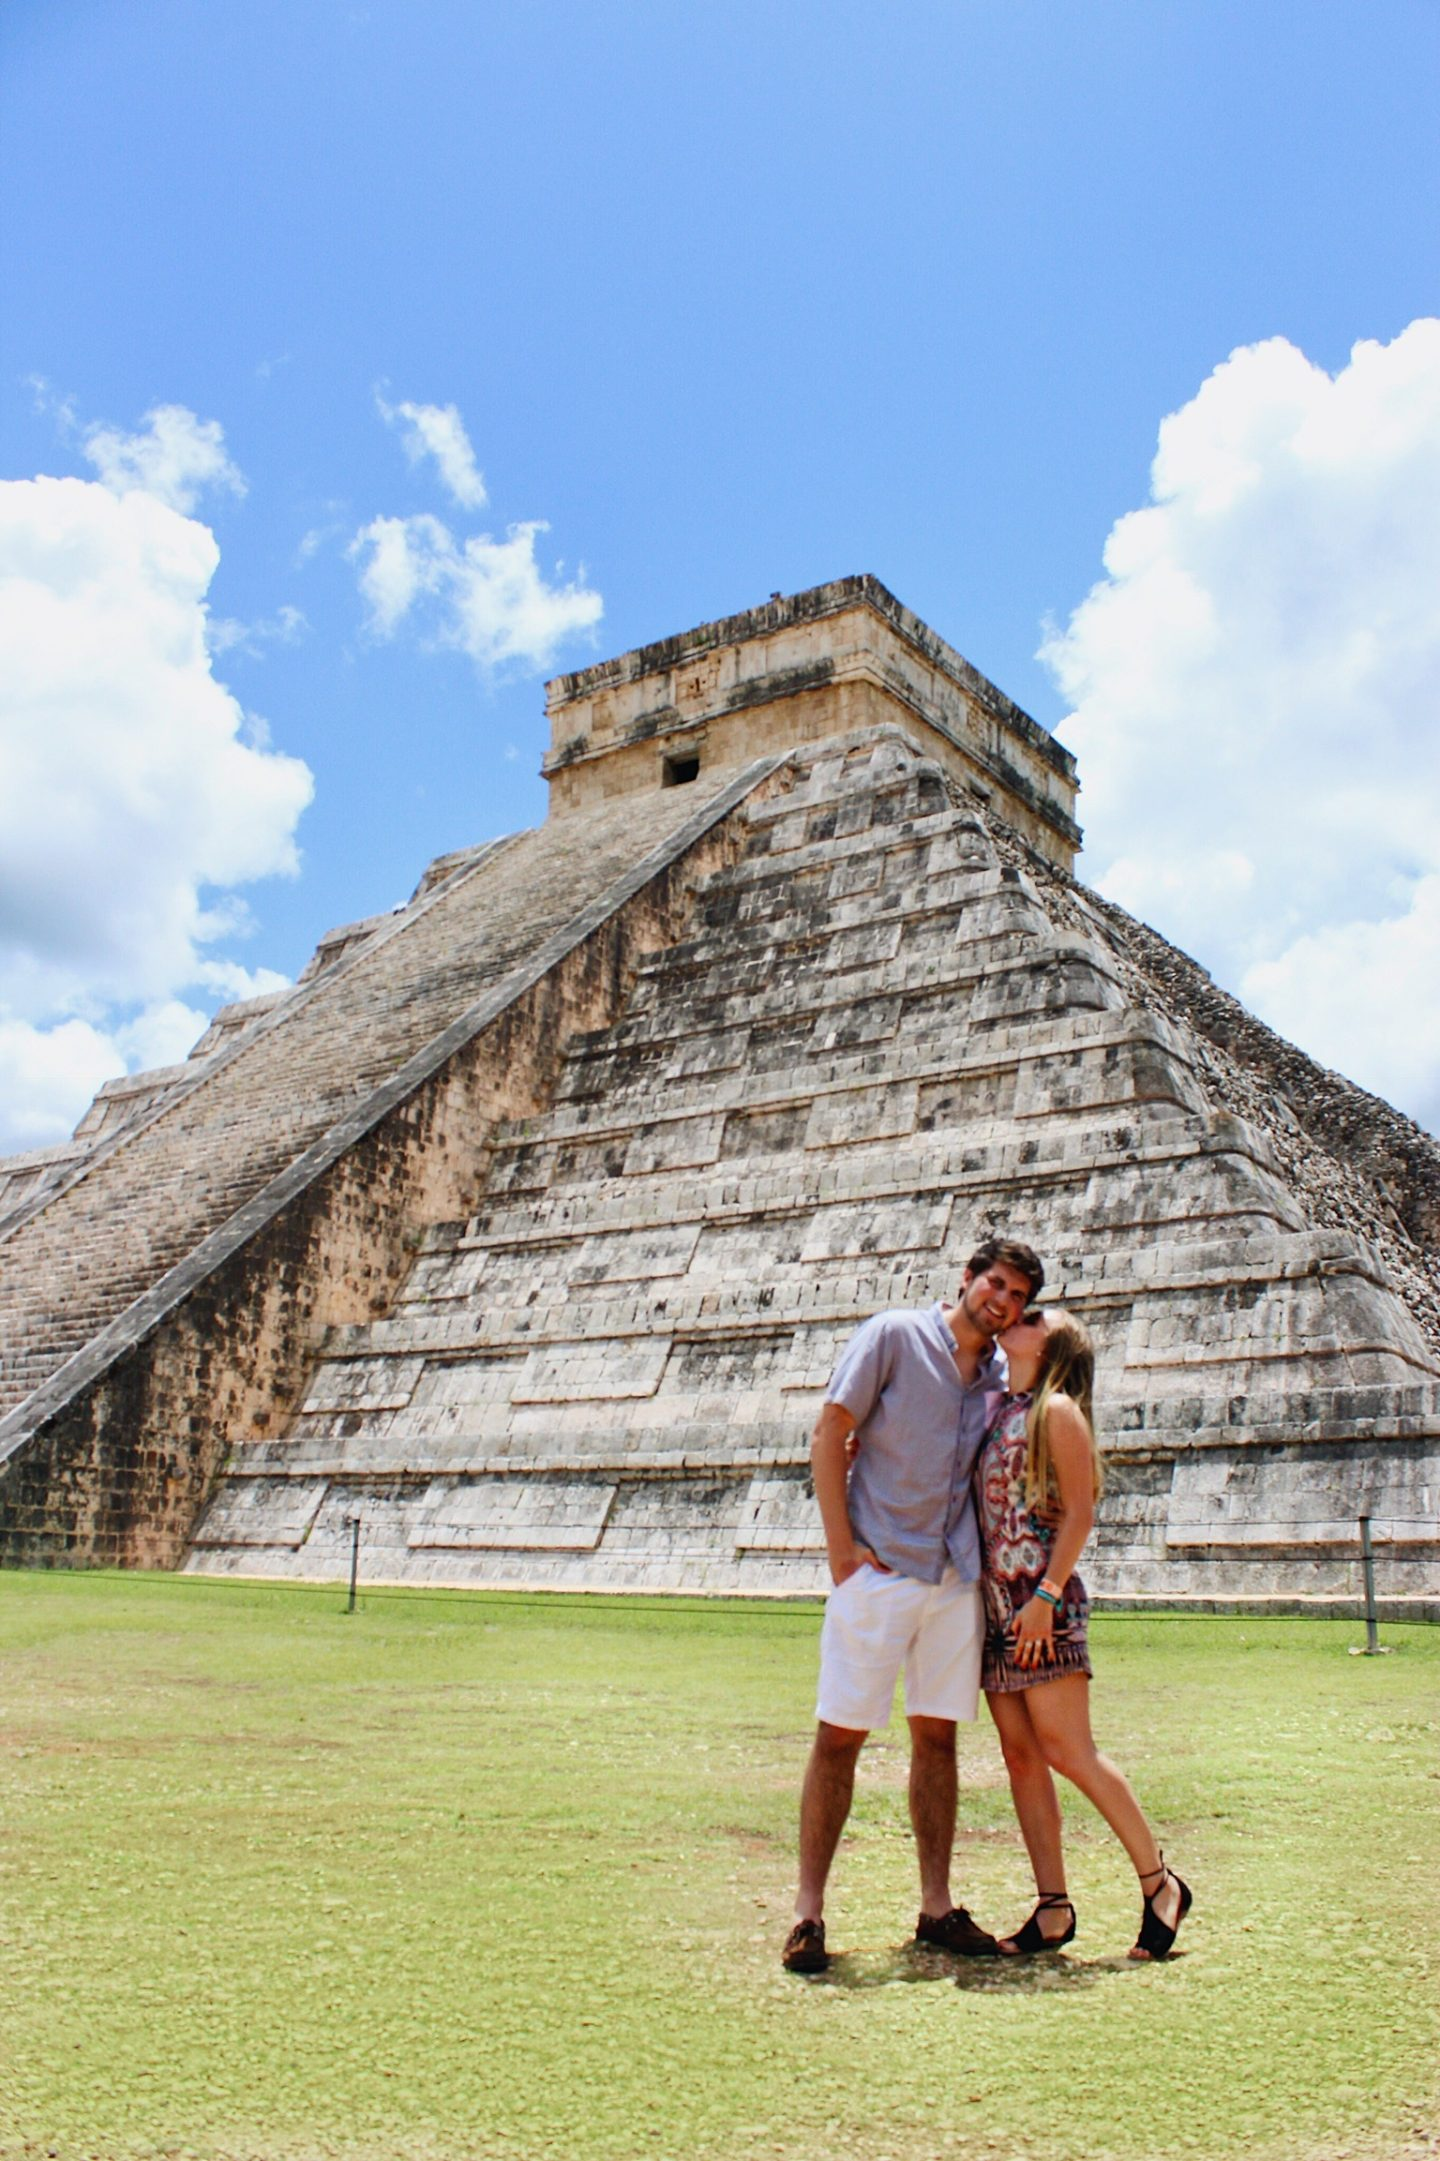 Visiting Chichen Itzá in Mexico with my boyfriend!